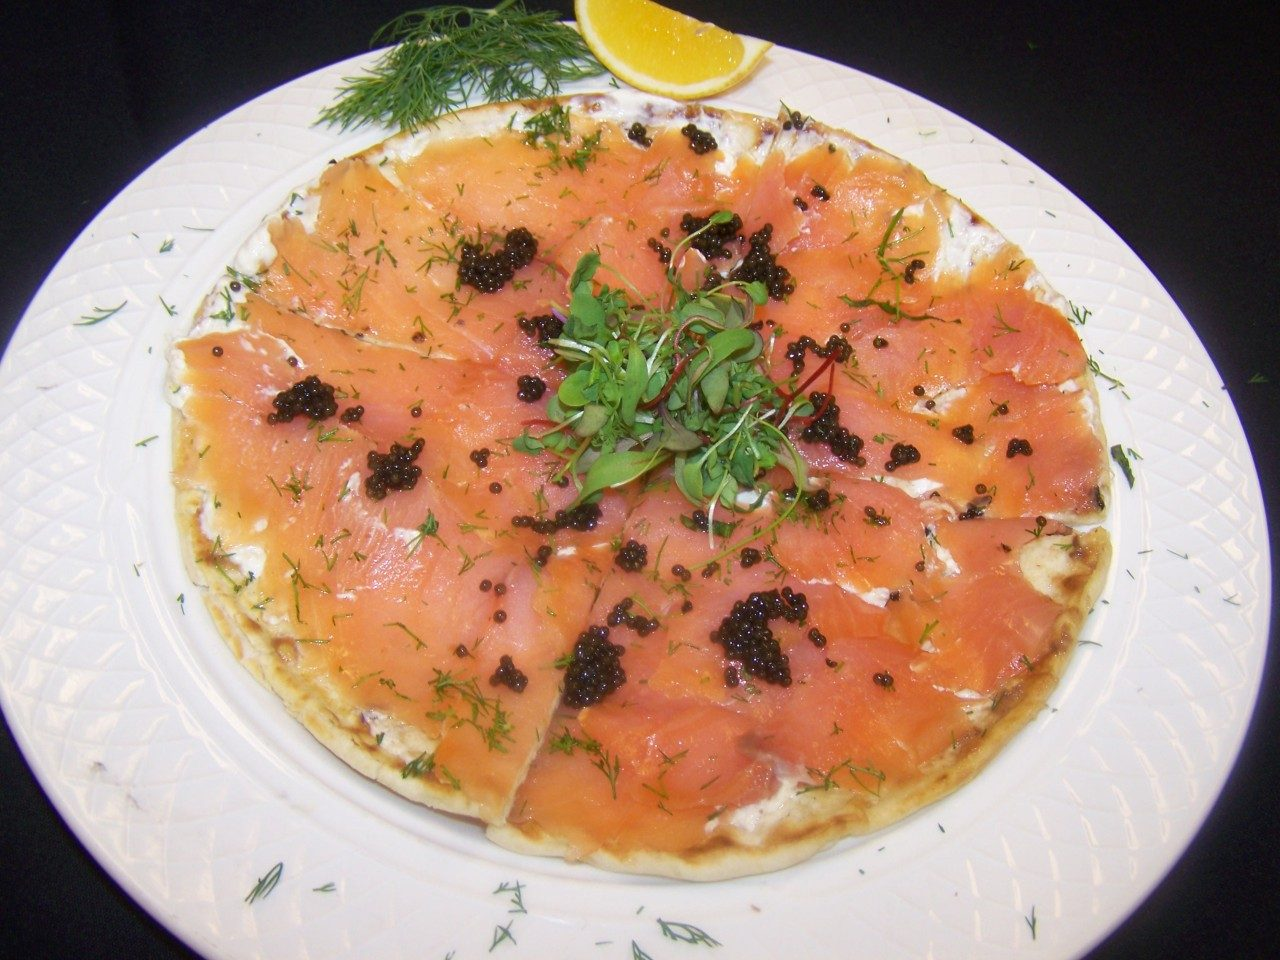 Preston's smoked salmon flatbread features fresh dill from the garden.